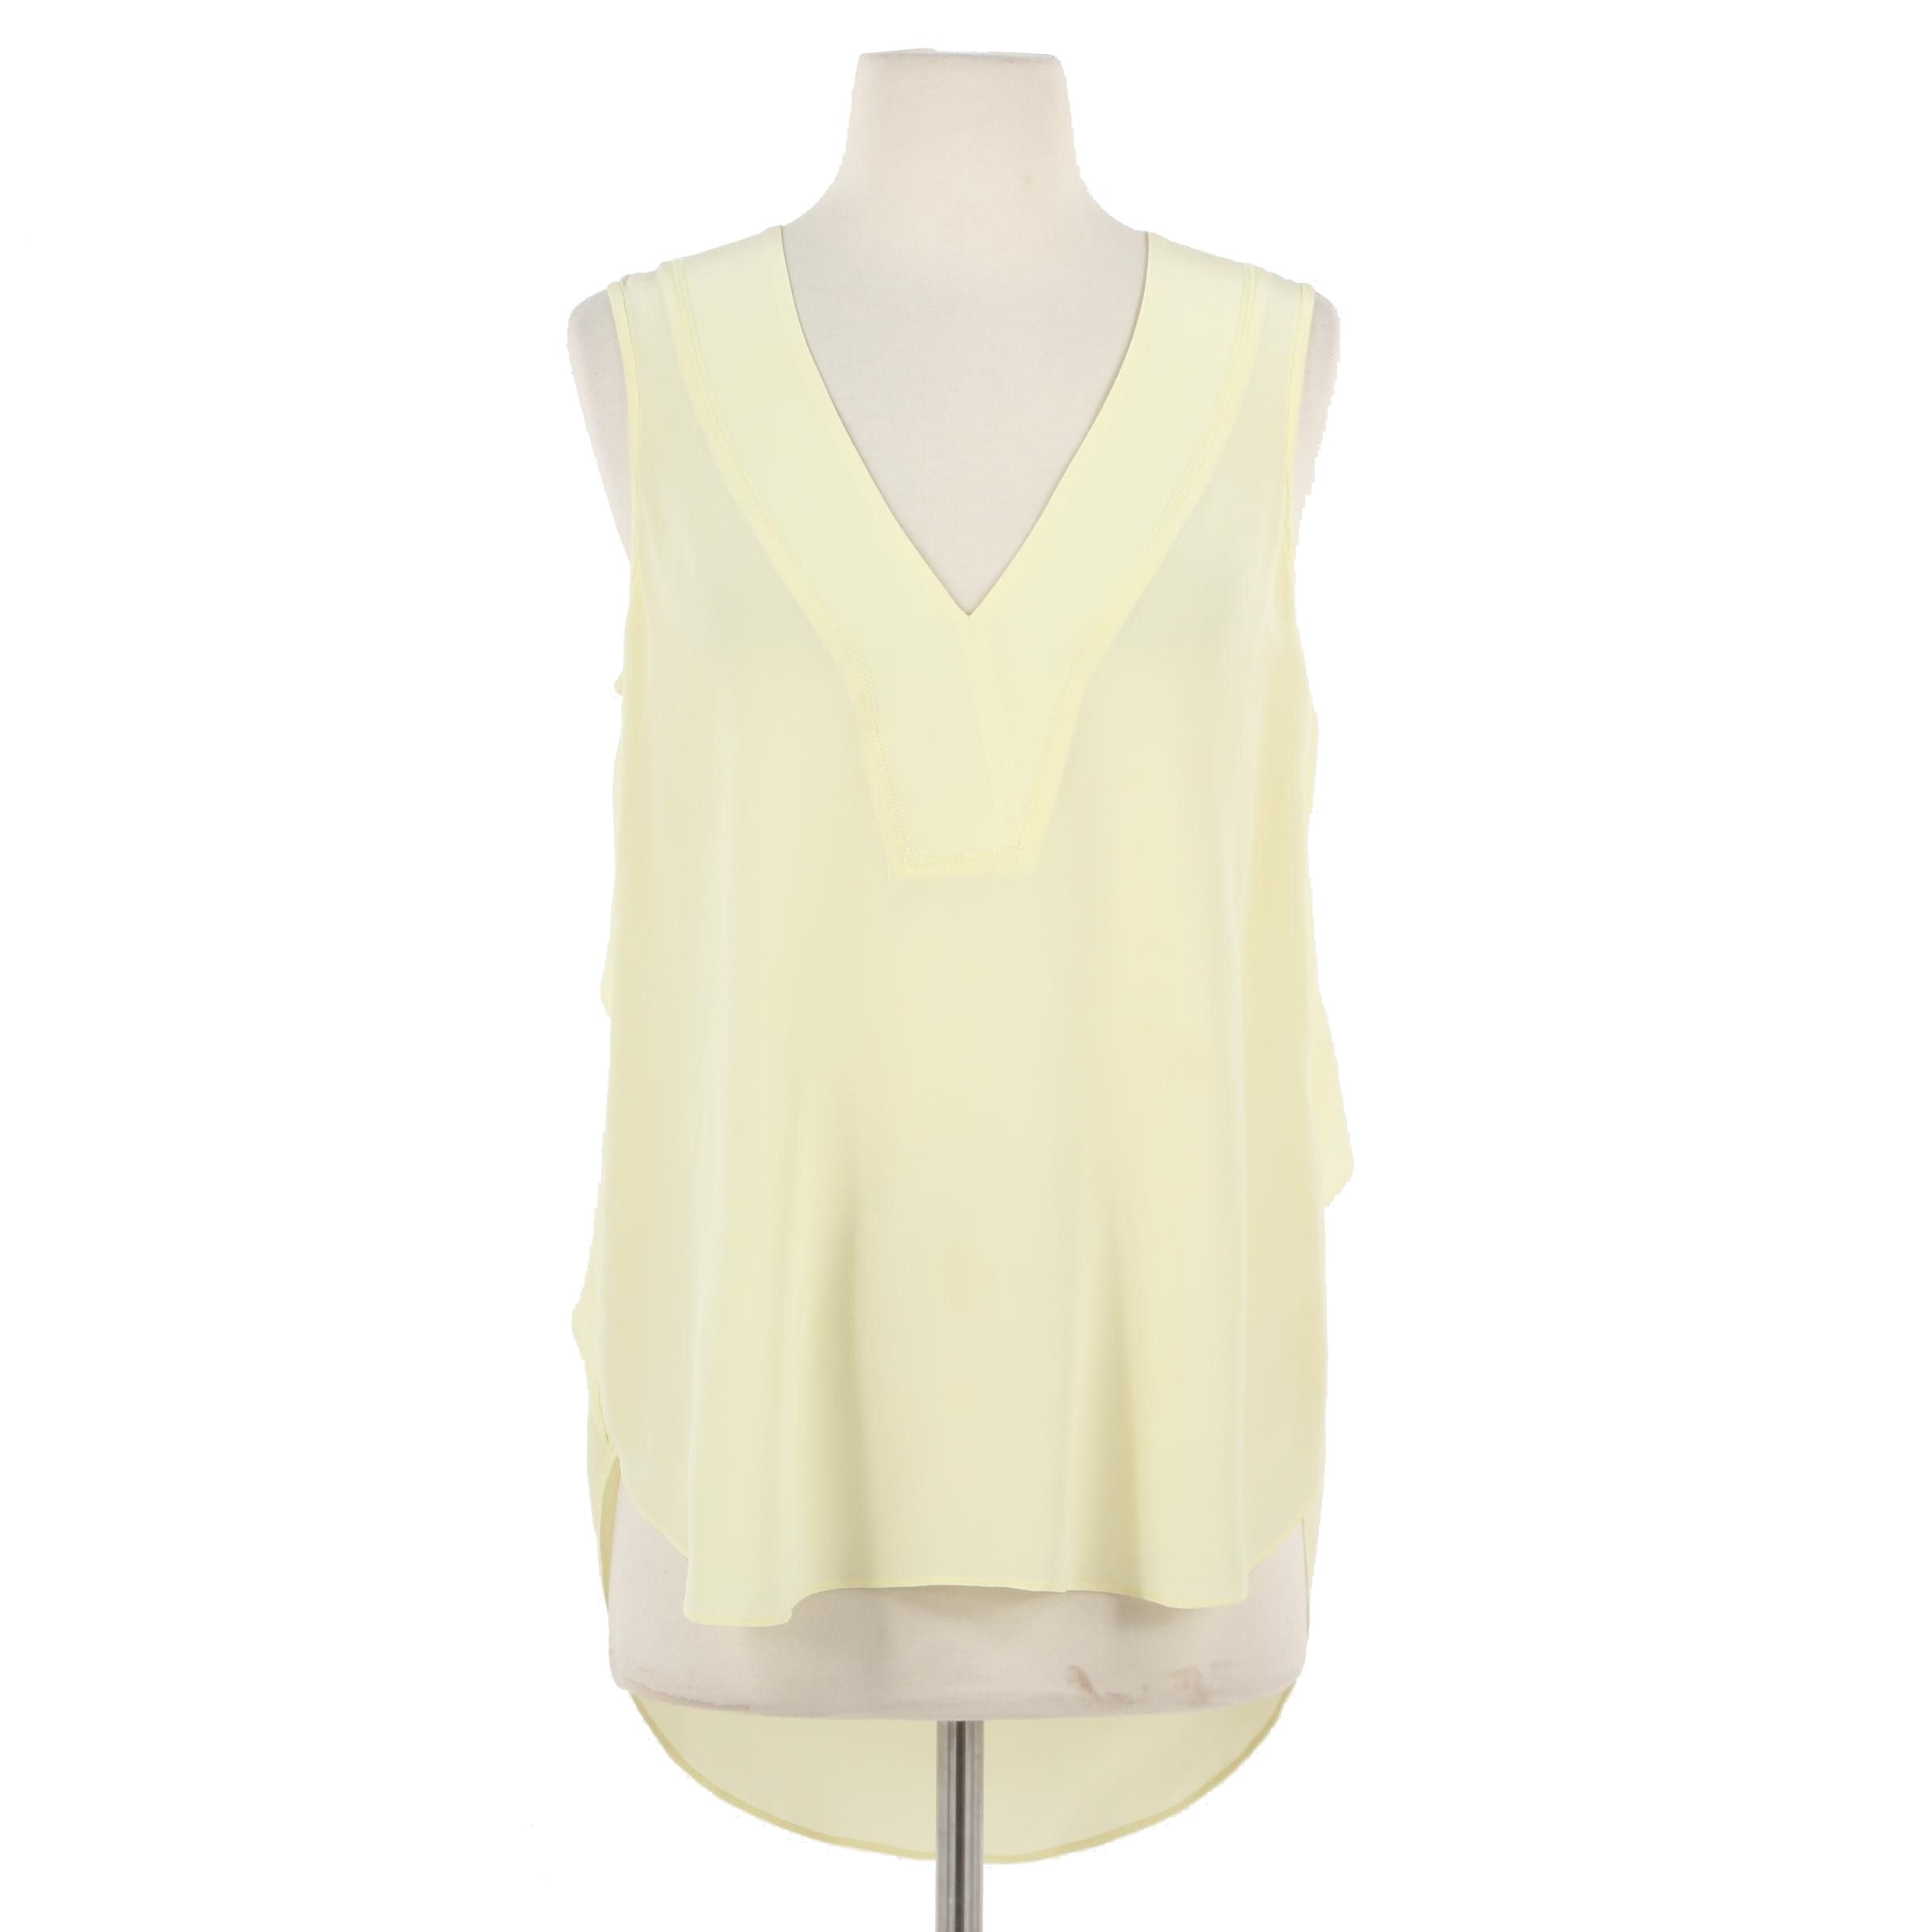 Derek Lam 10 Crosby Silk V-Neck Sleeveless Blouse in Pale Yellow